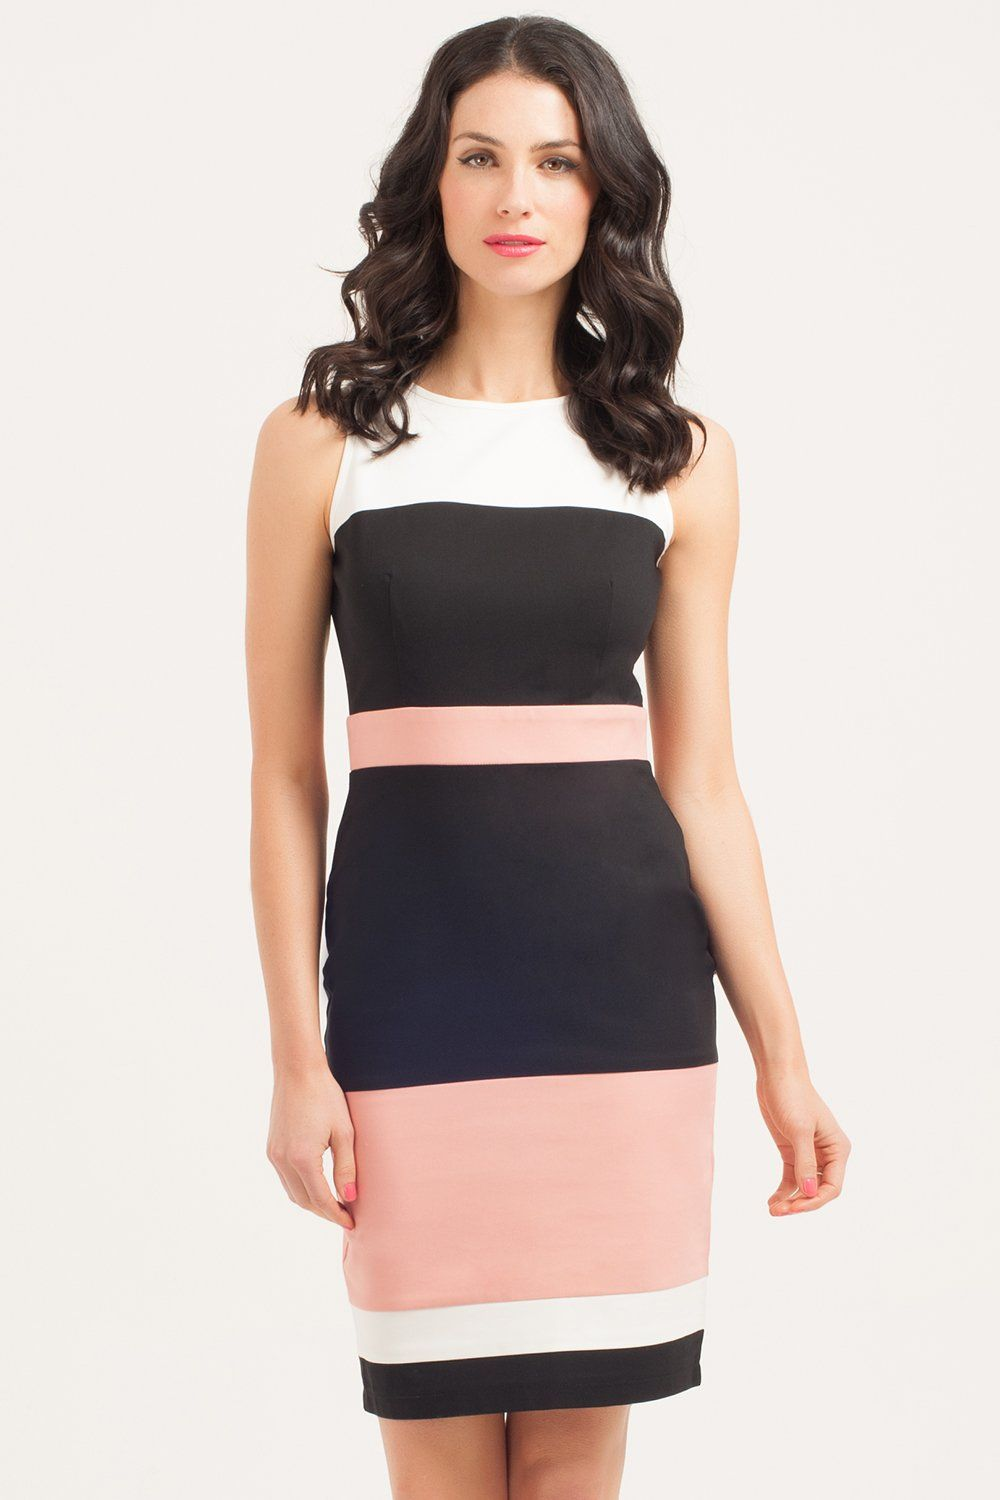 Color block dresses summer